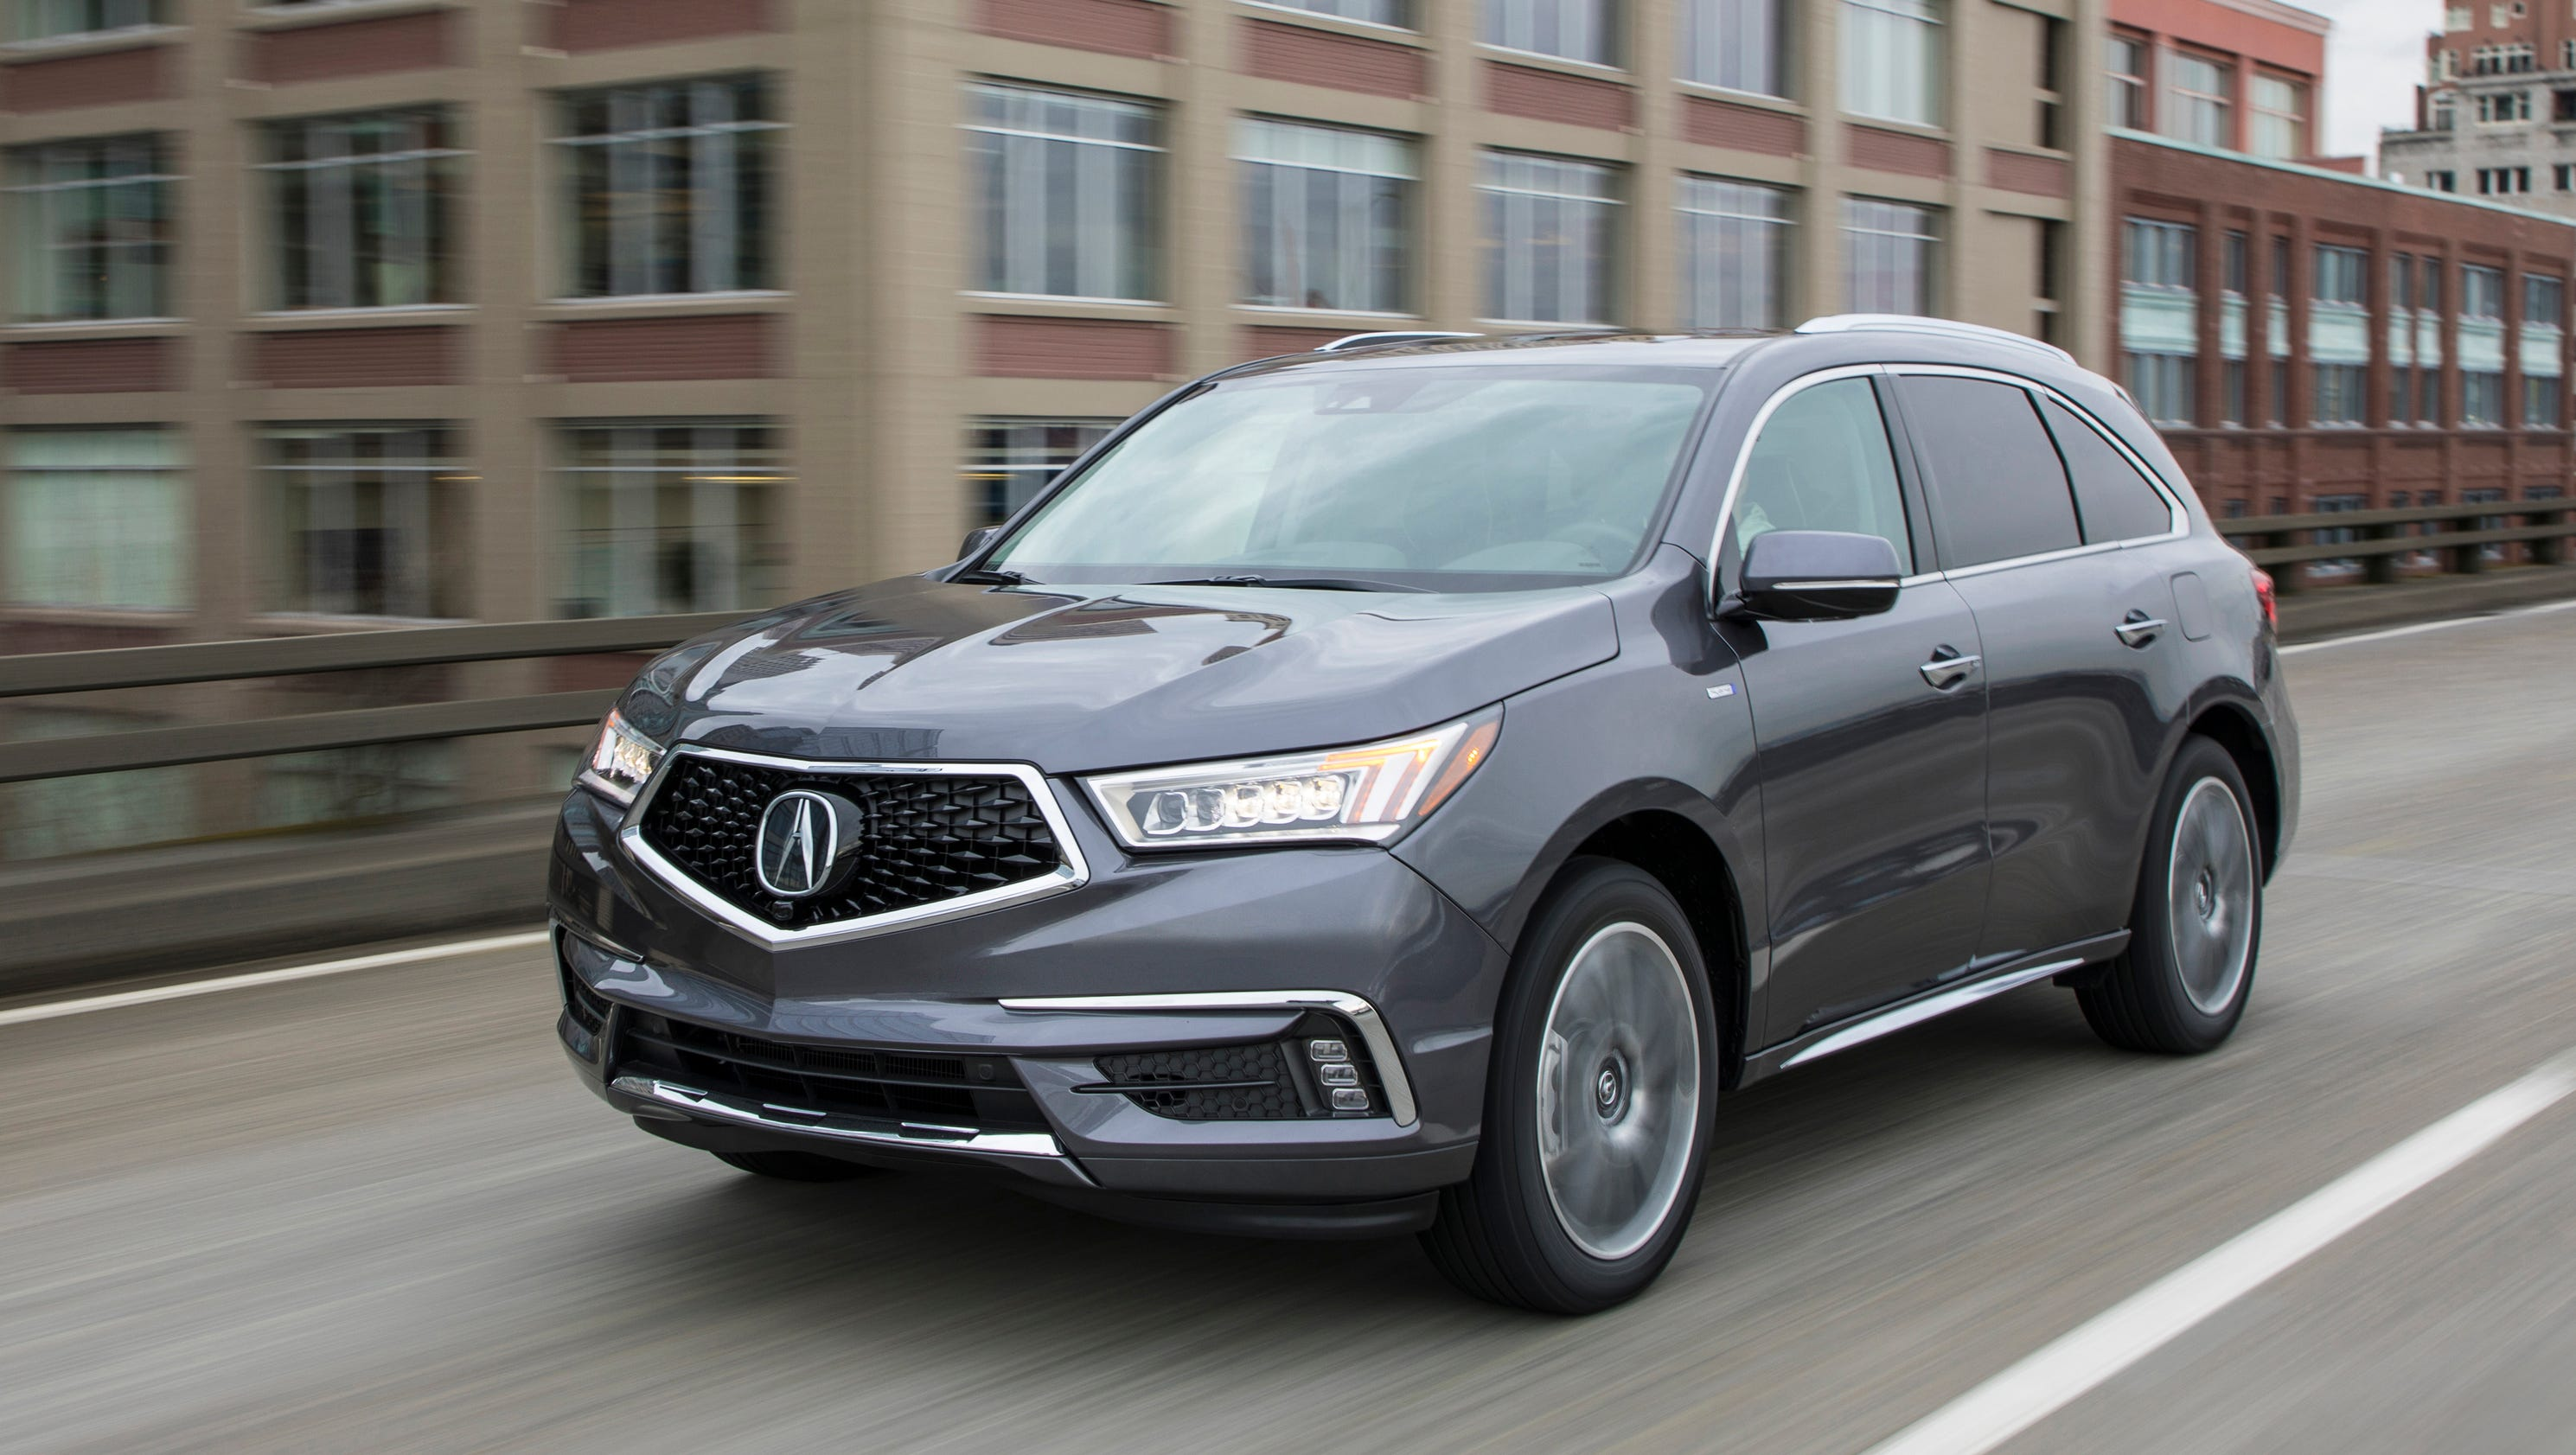 mdx in used usautomobile awd il schaumburg sports acura cars package